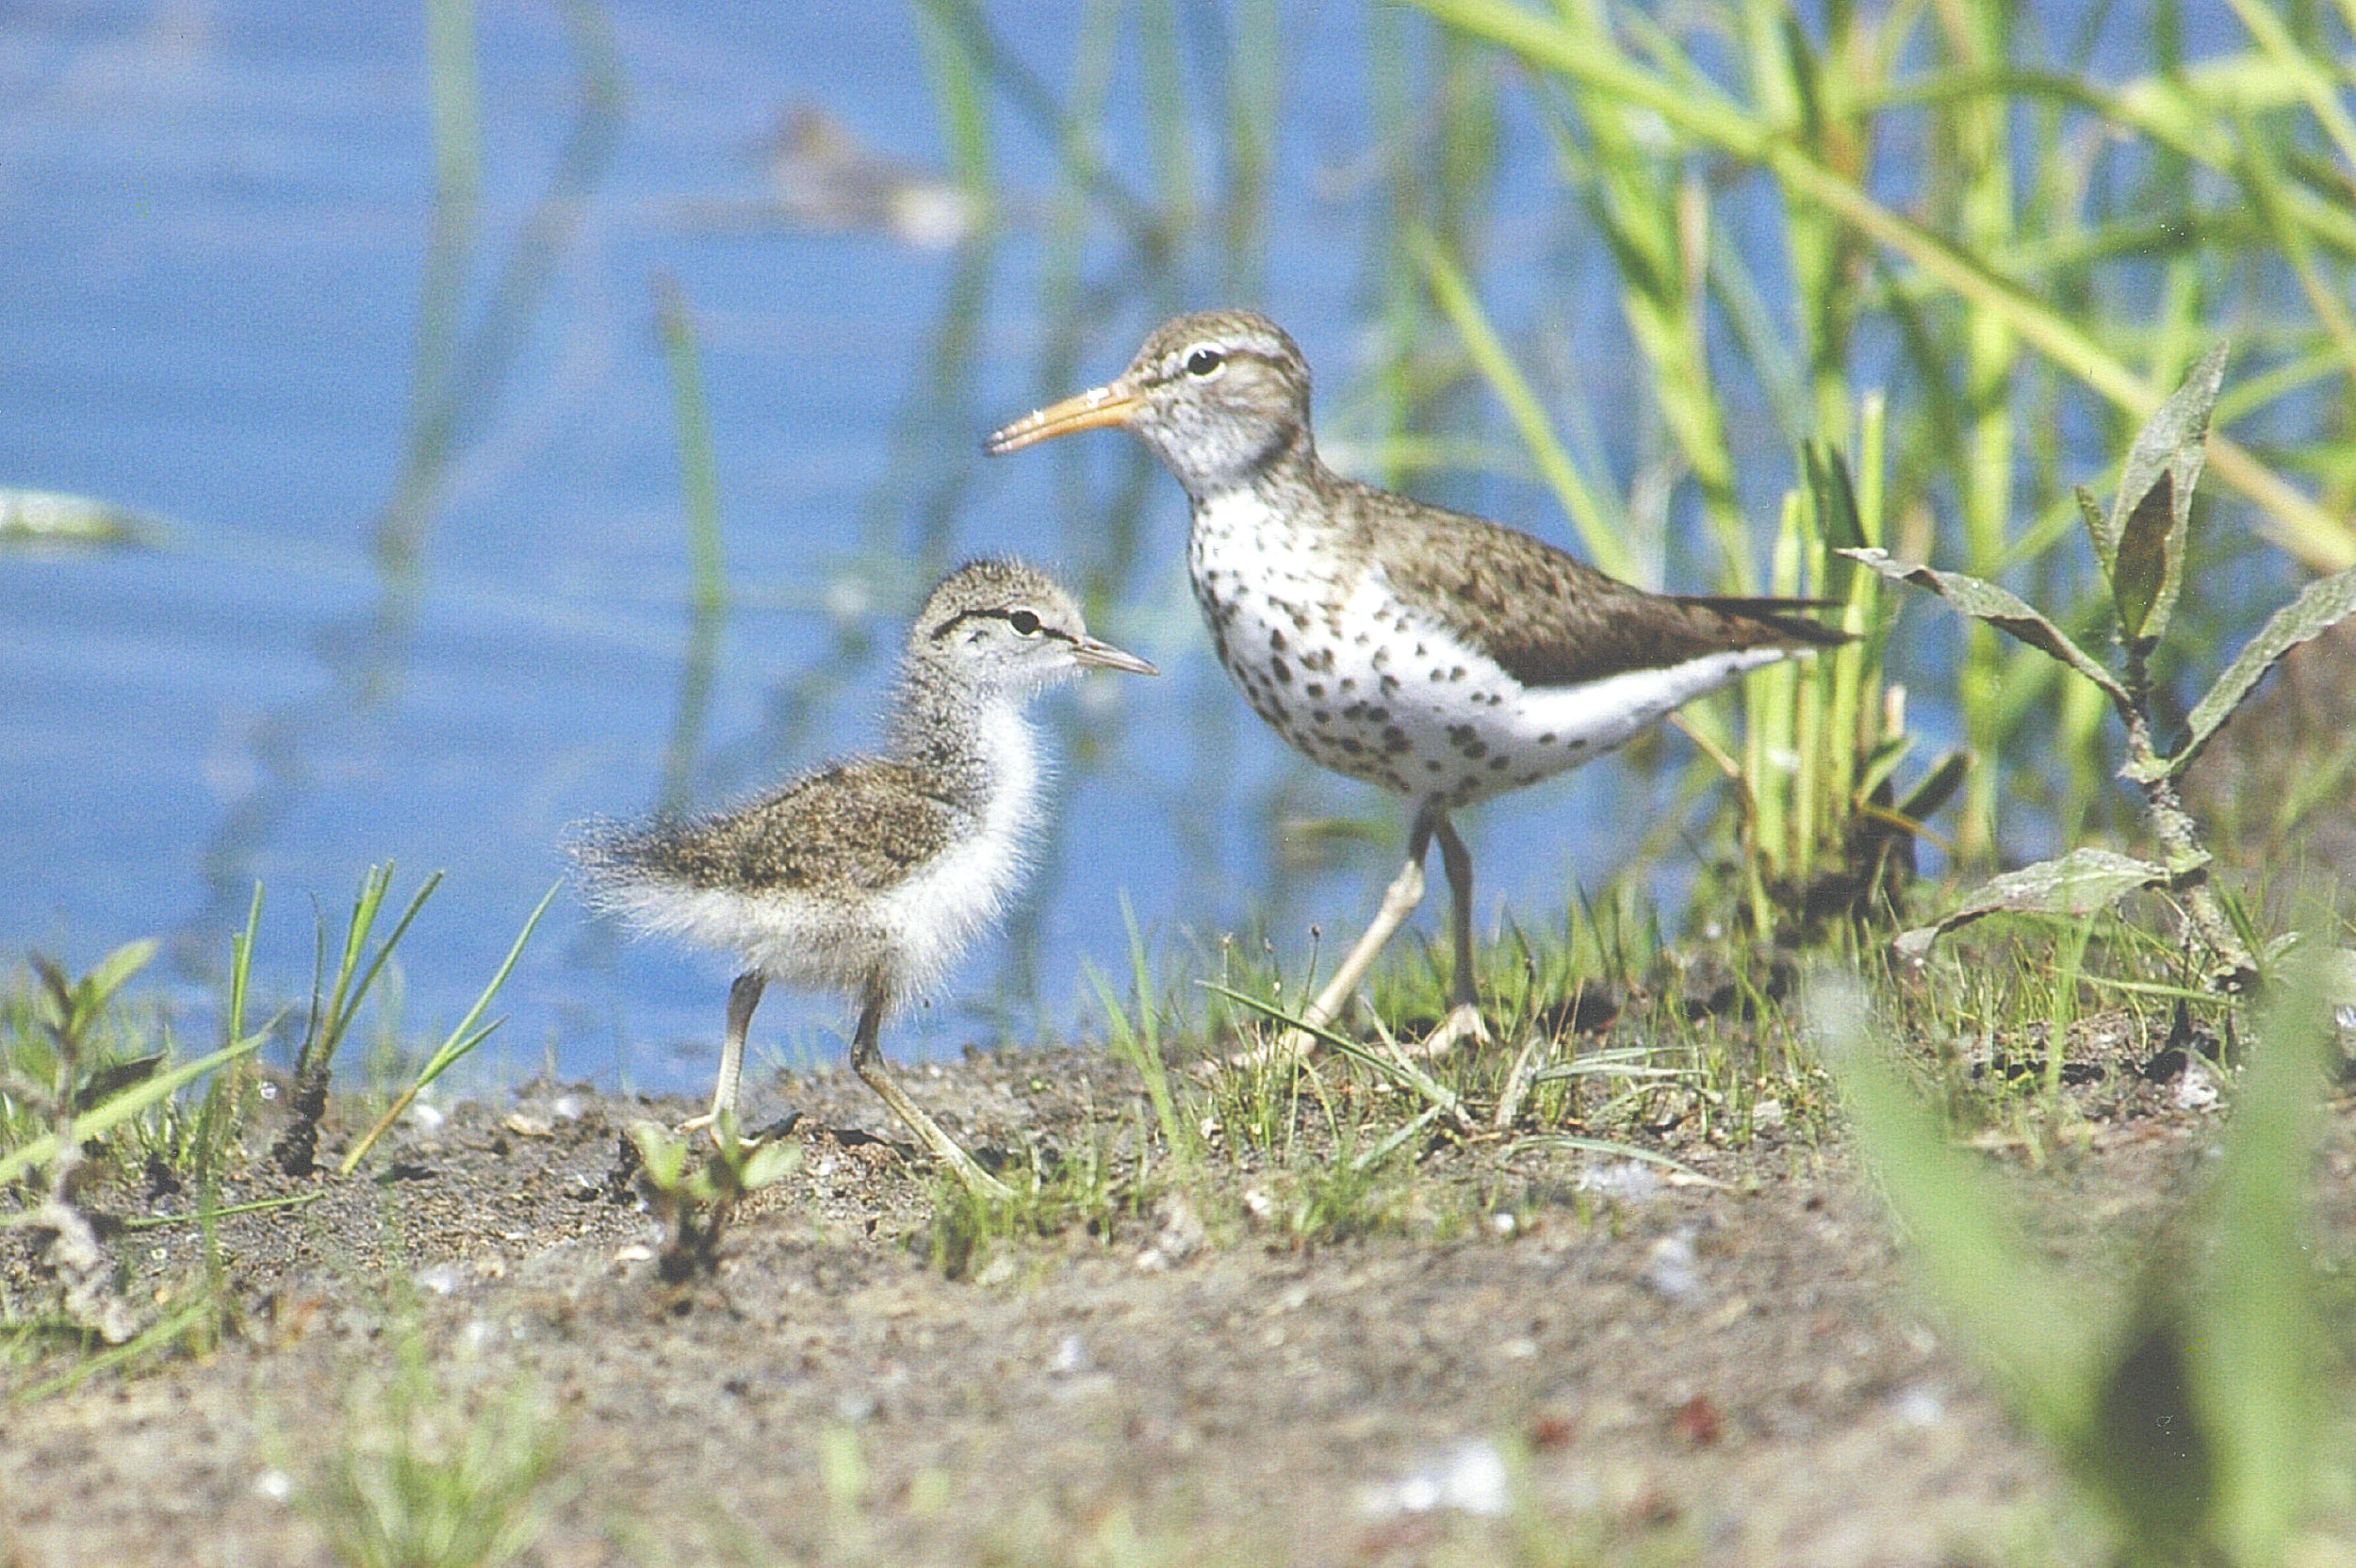 Spotted Sandpiper with young, photo by Betty Fisher.